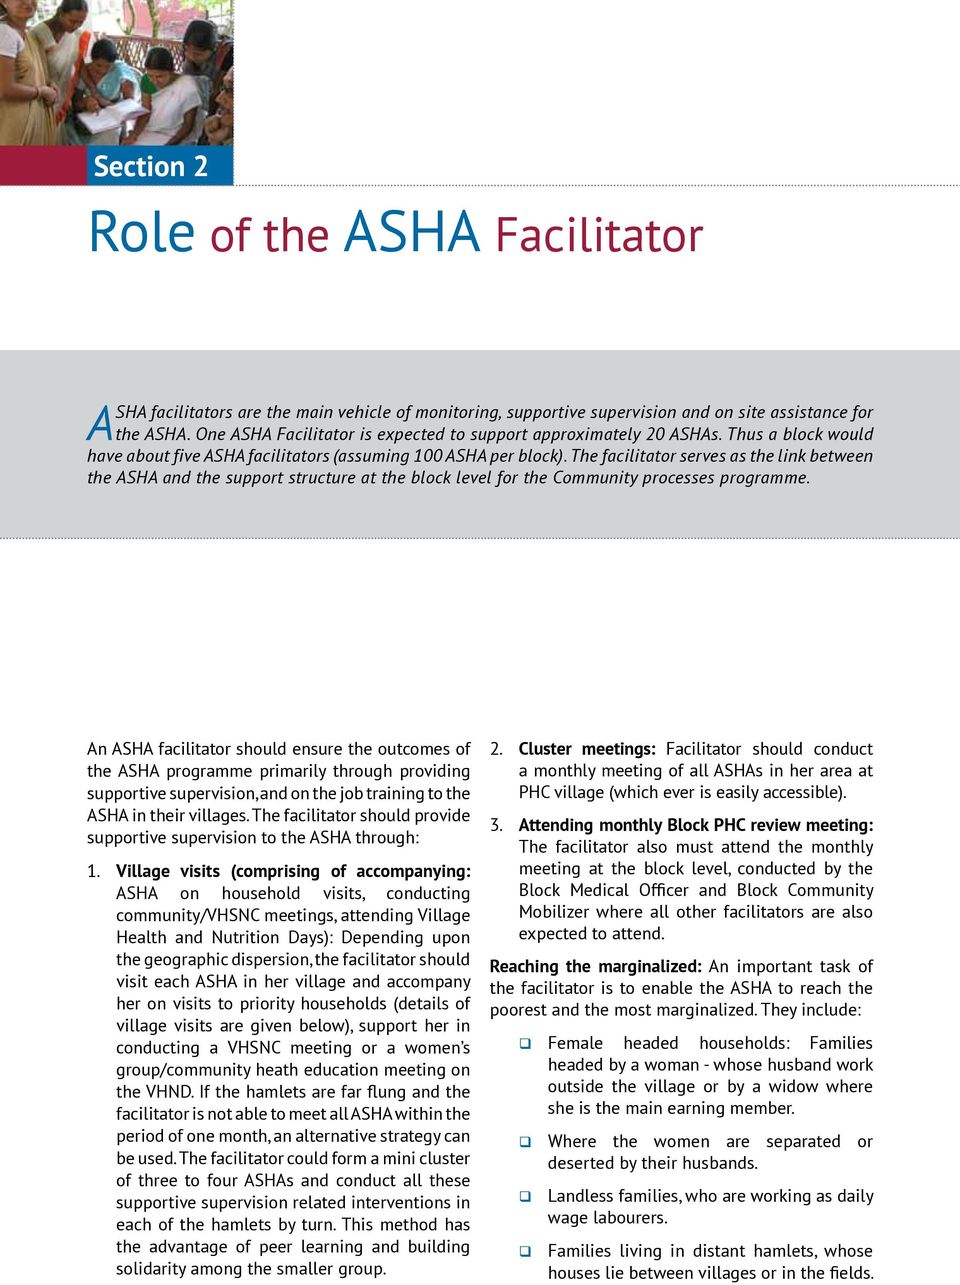 The facilitator serves as the link between the ASHA and the support structure at the block level for the Community processes programme.